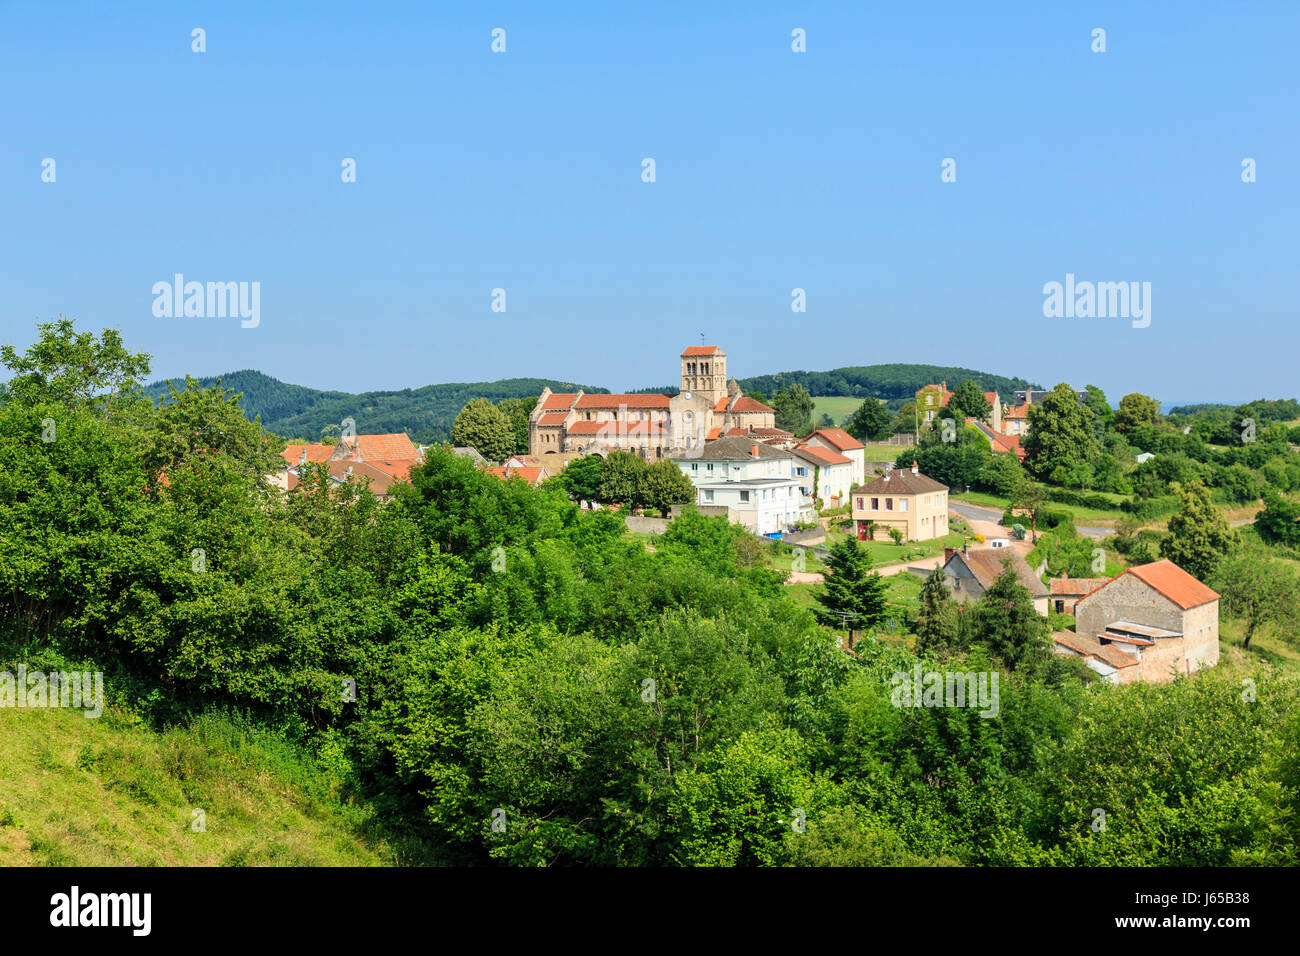 France, Allier, Chatel Montagne - Stock Image